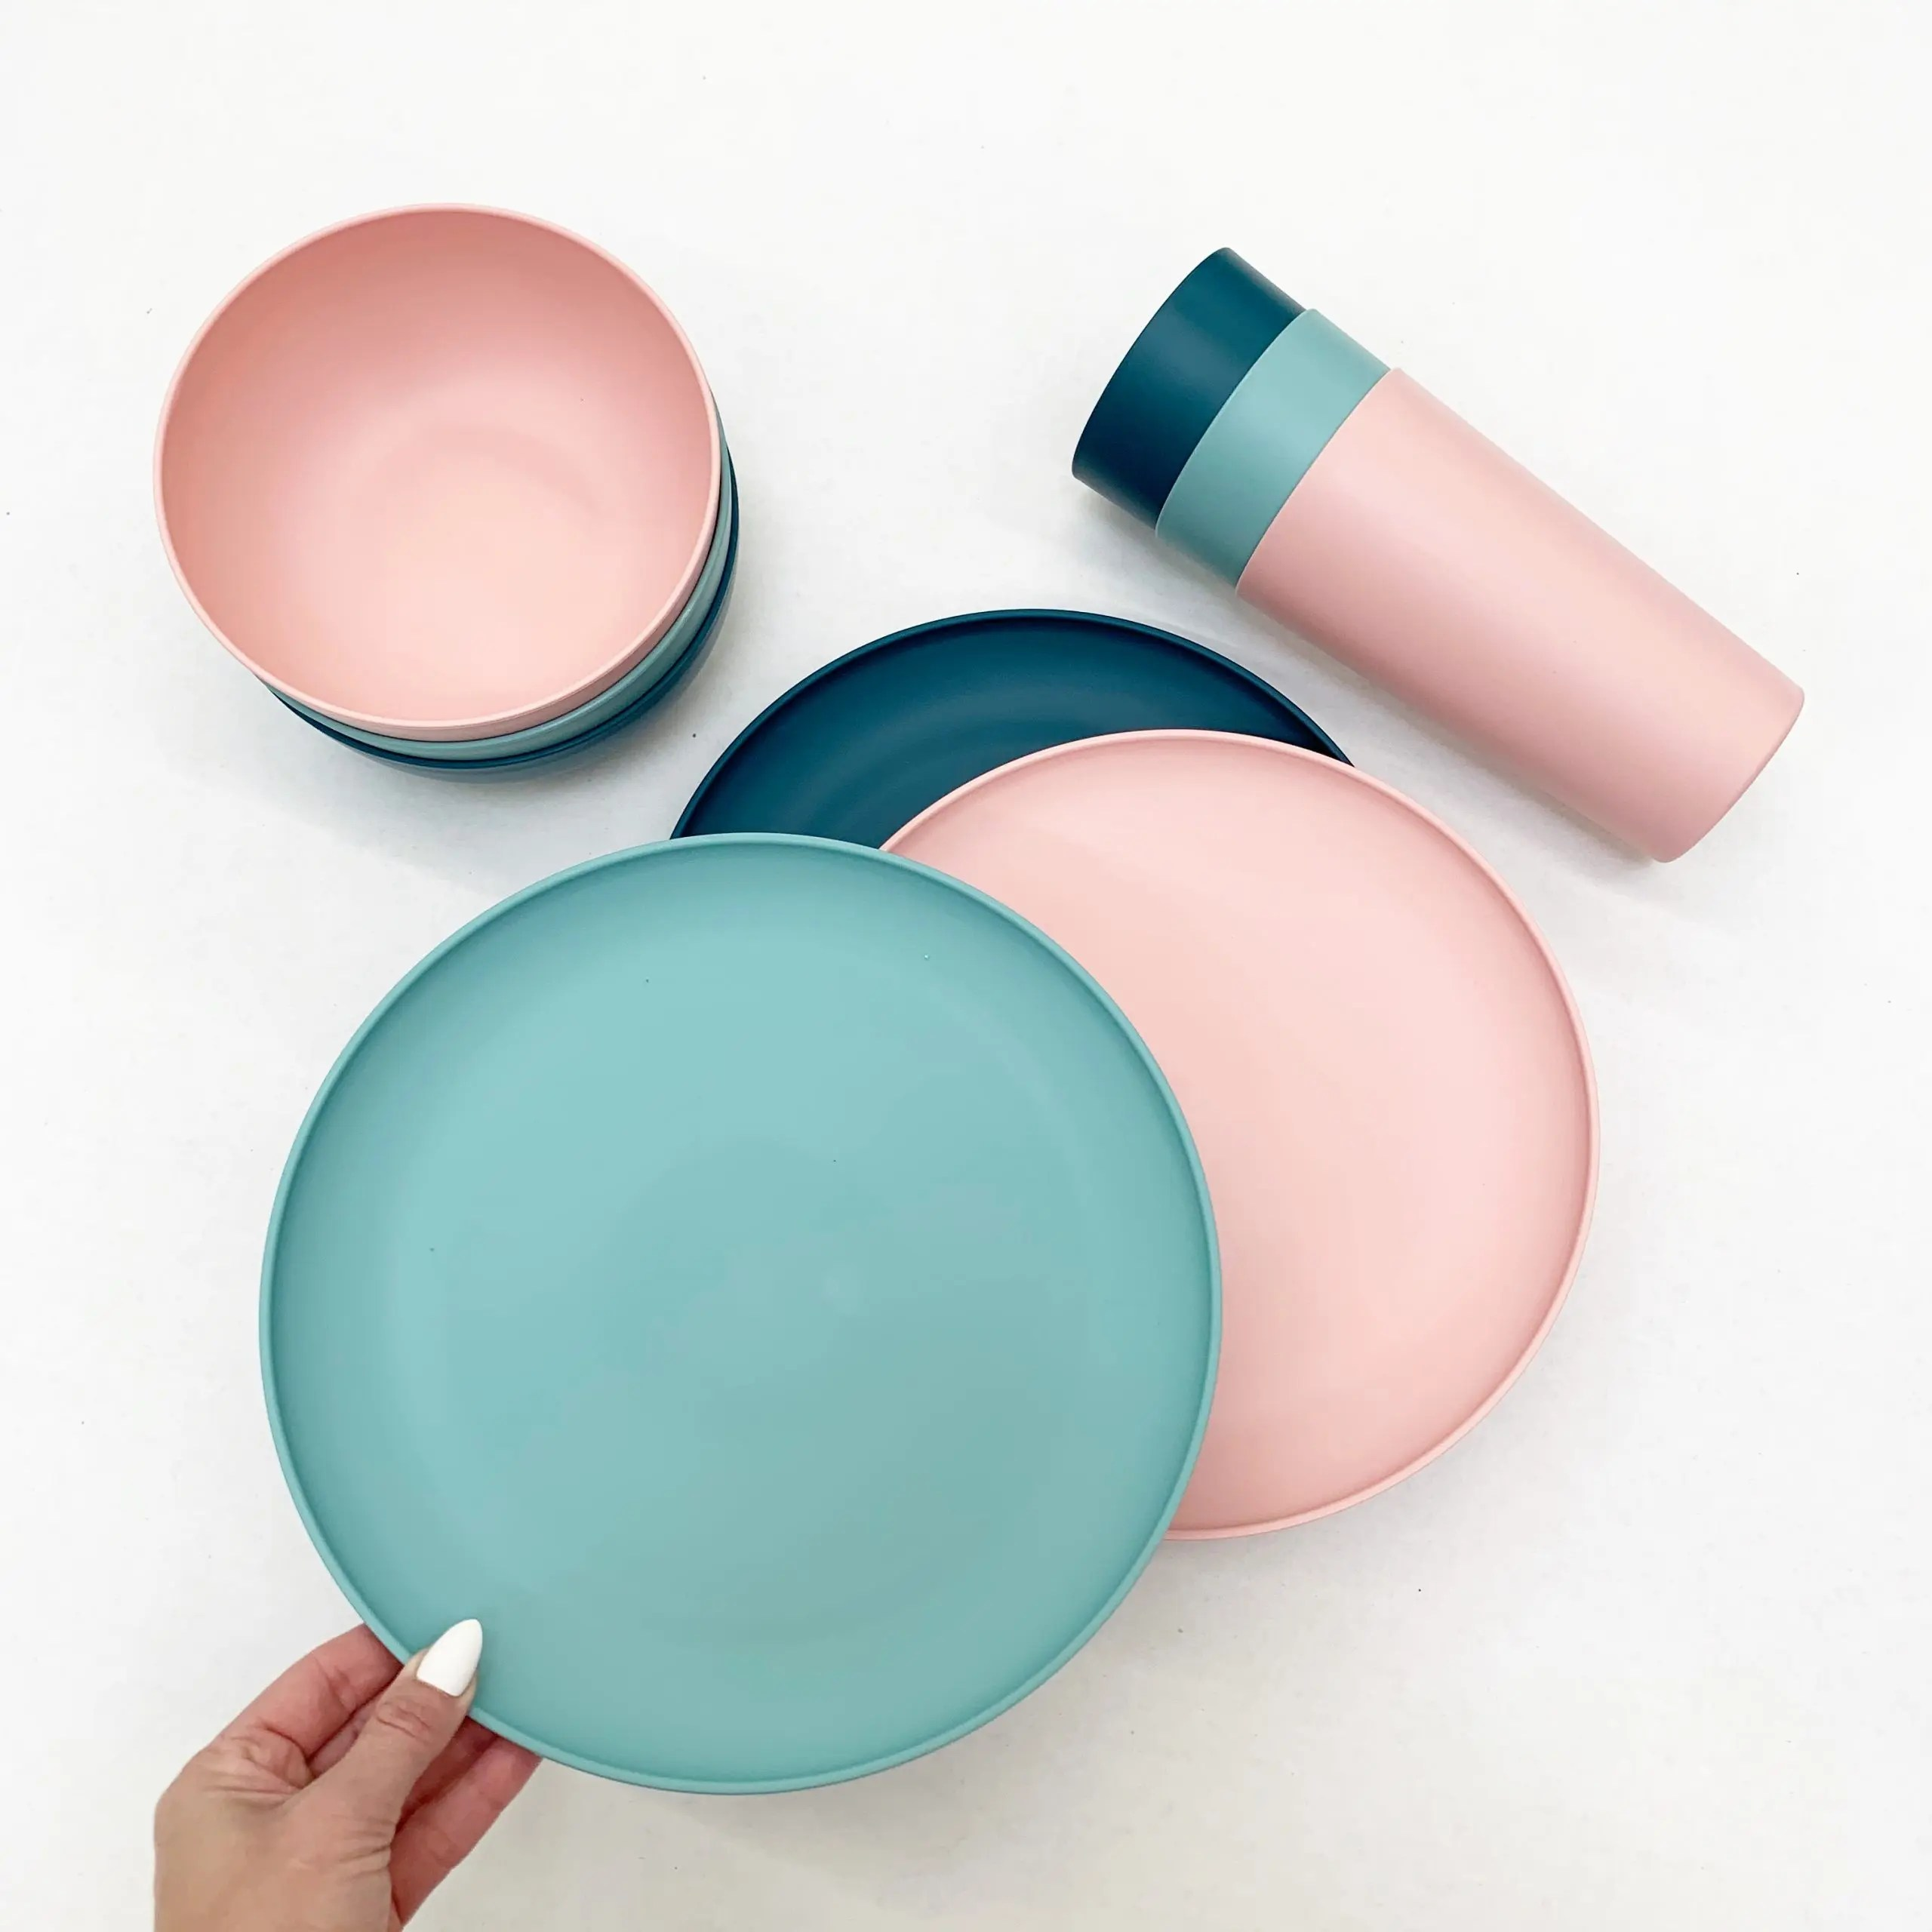 mainstays bpa free plastic plates, bowls, and cups